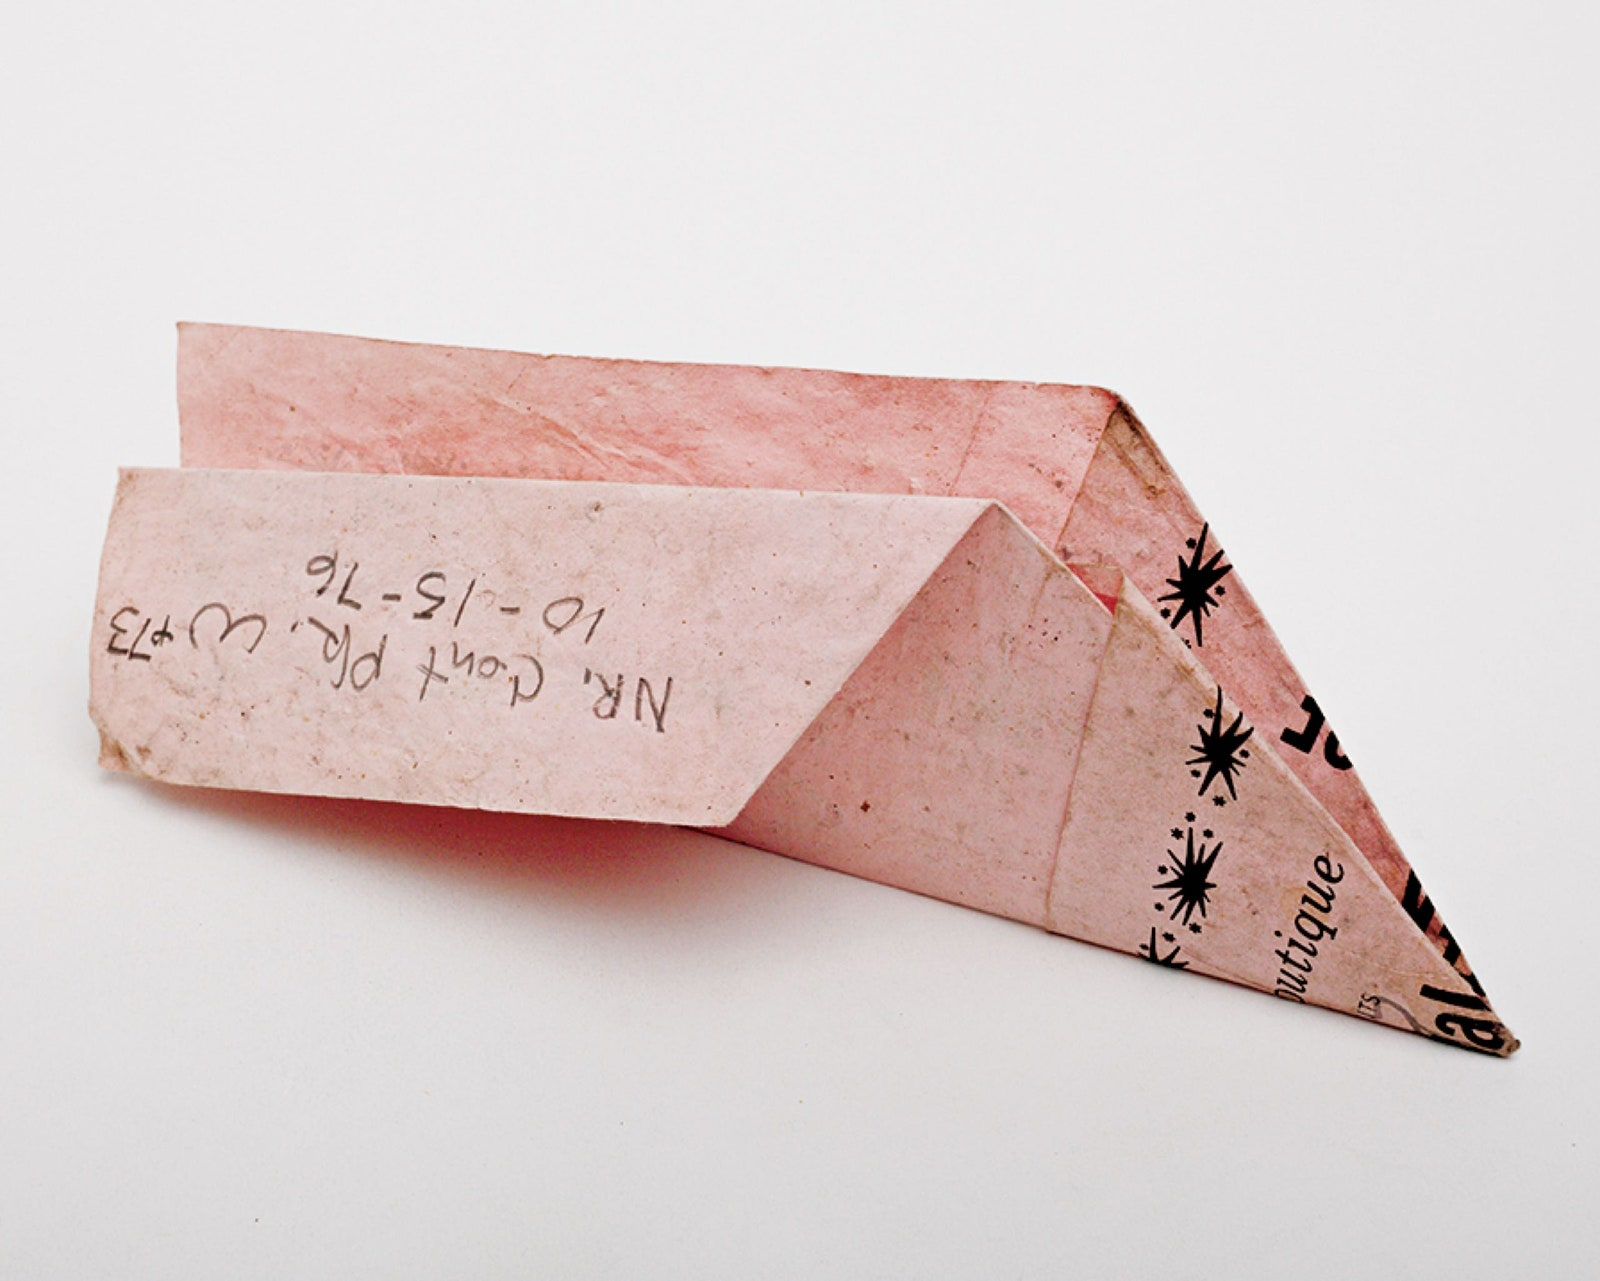 harry-everett-smith-paper-airplane-everythingwithatwist-12